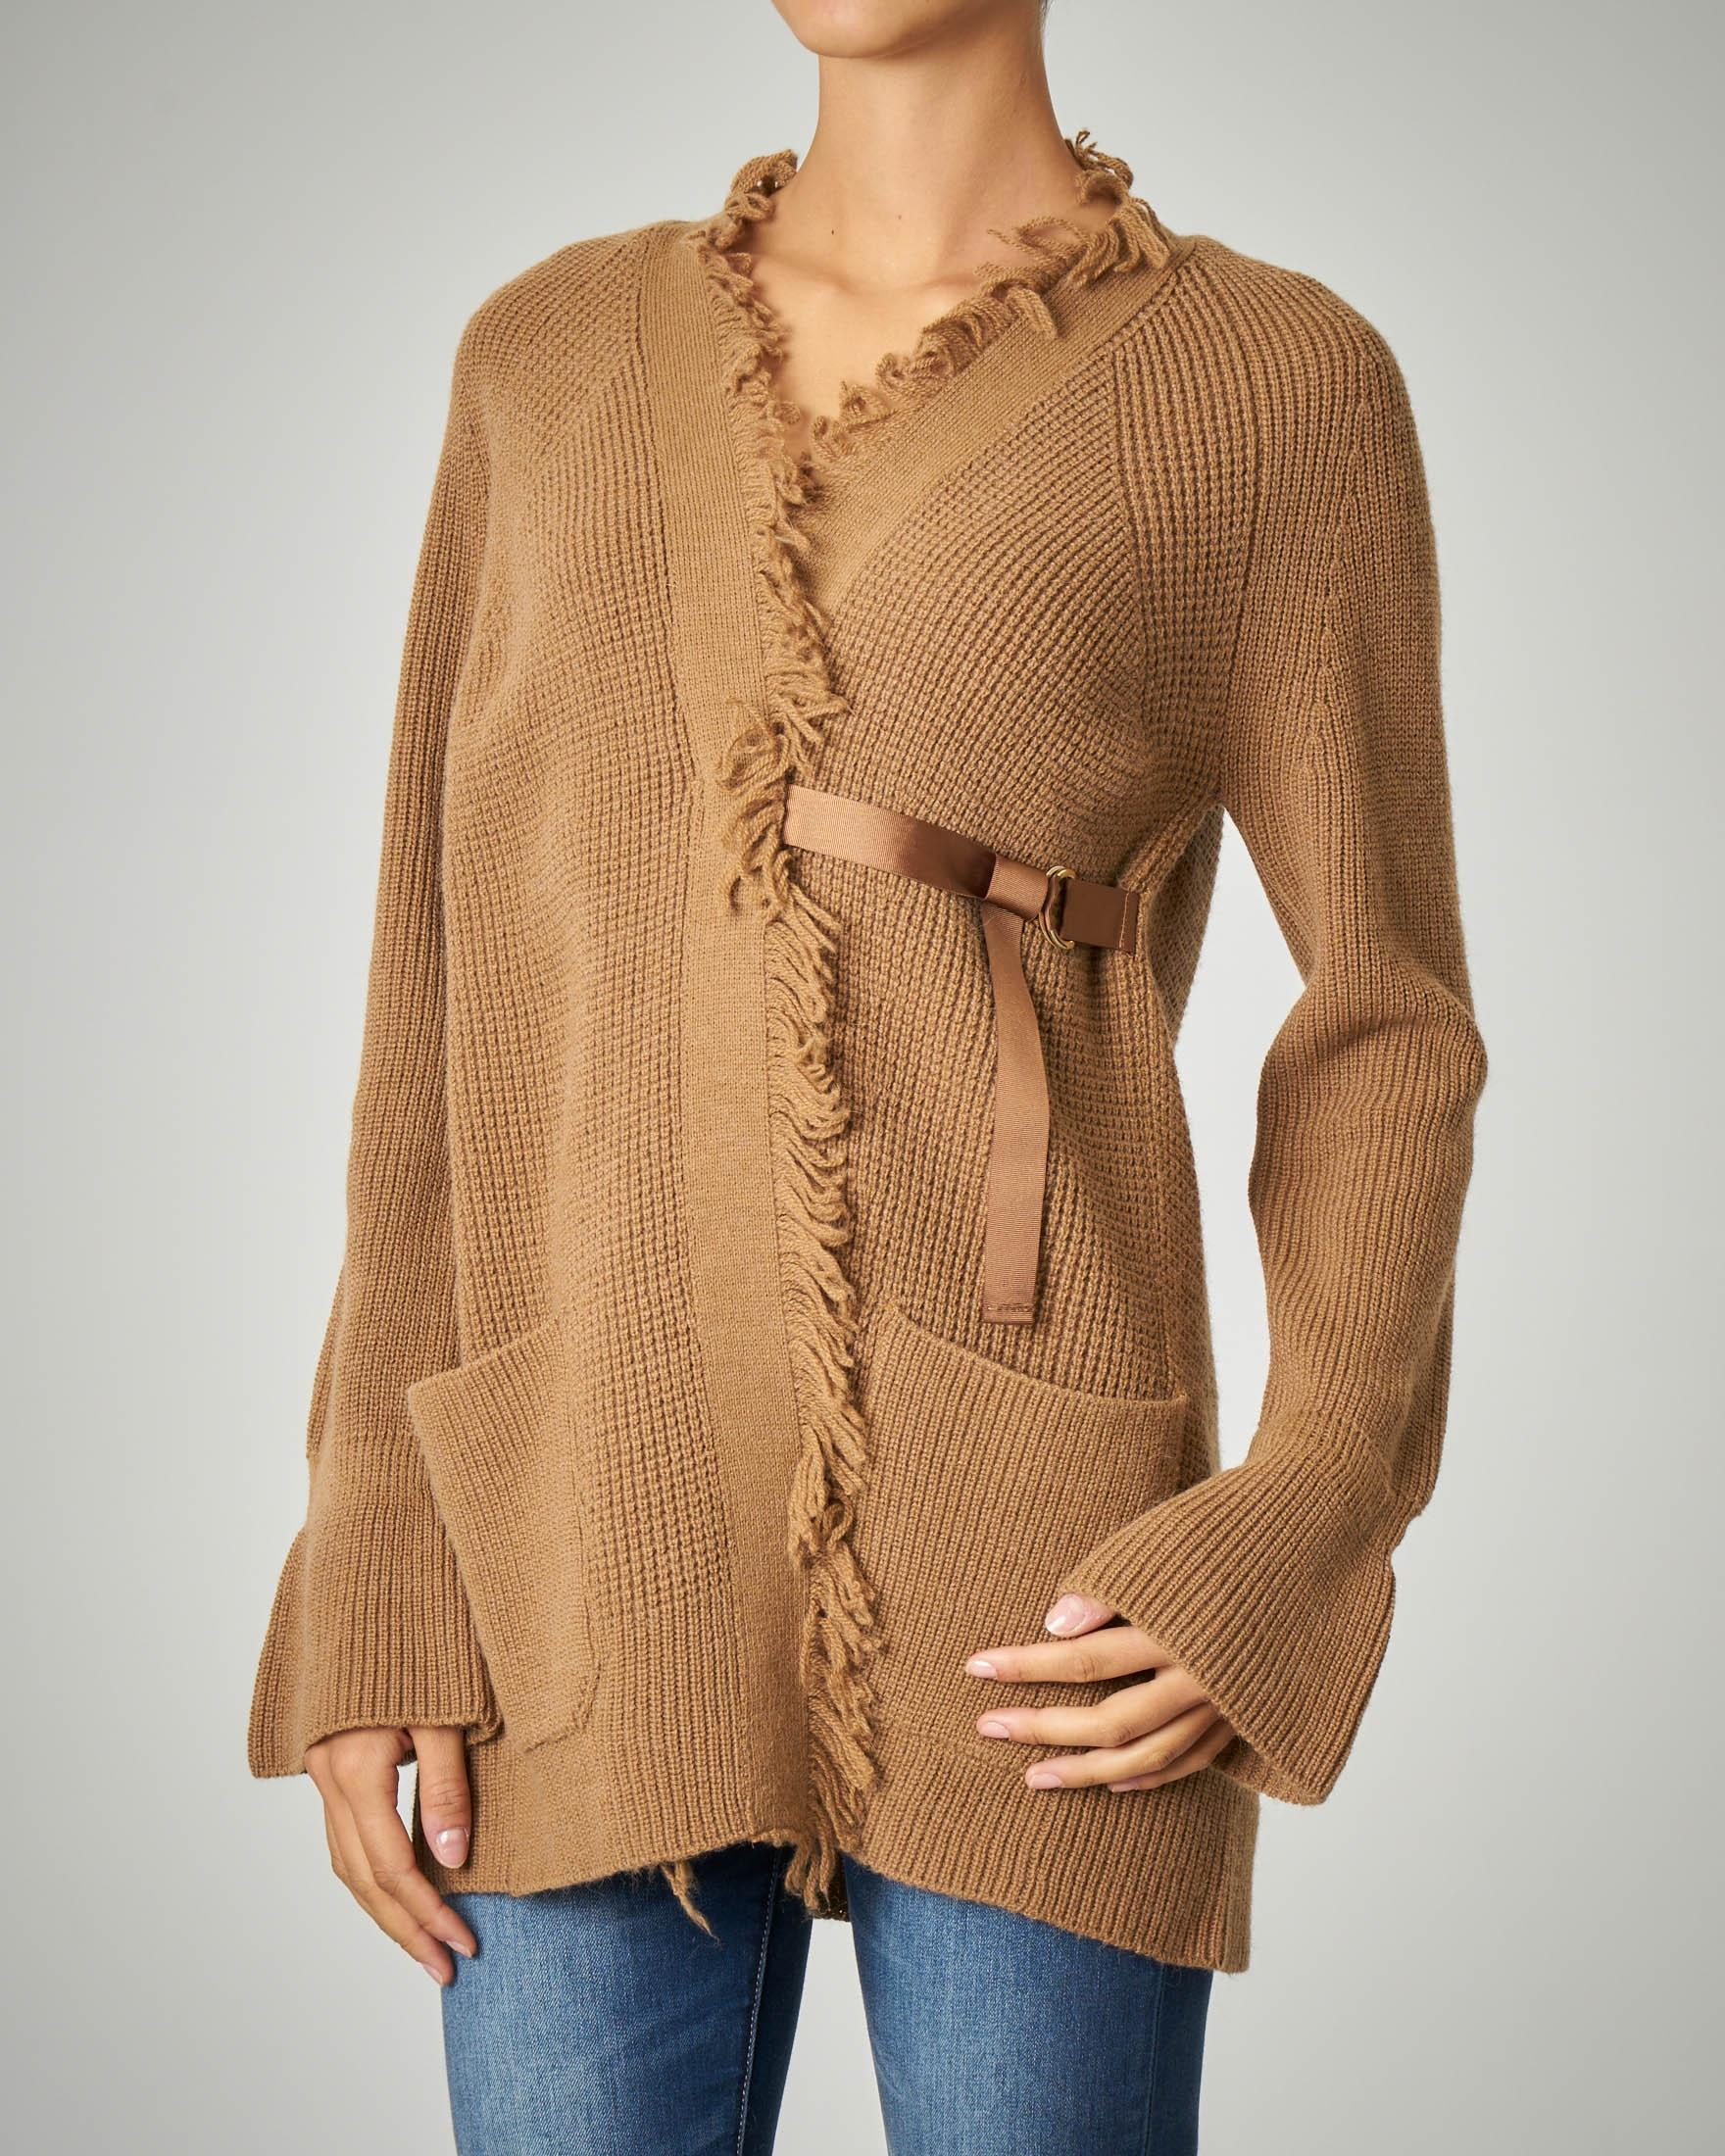 Cardigan cammello in mohair con frange